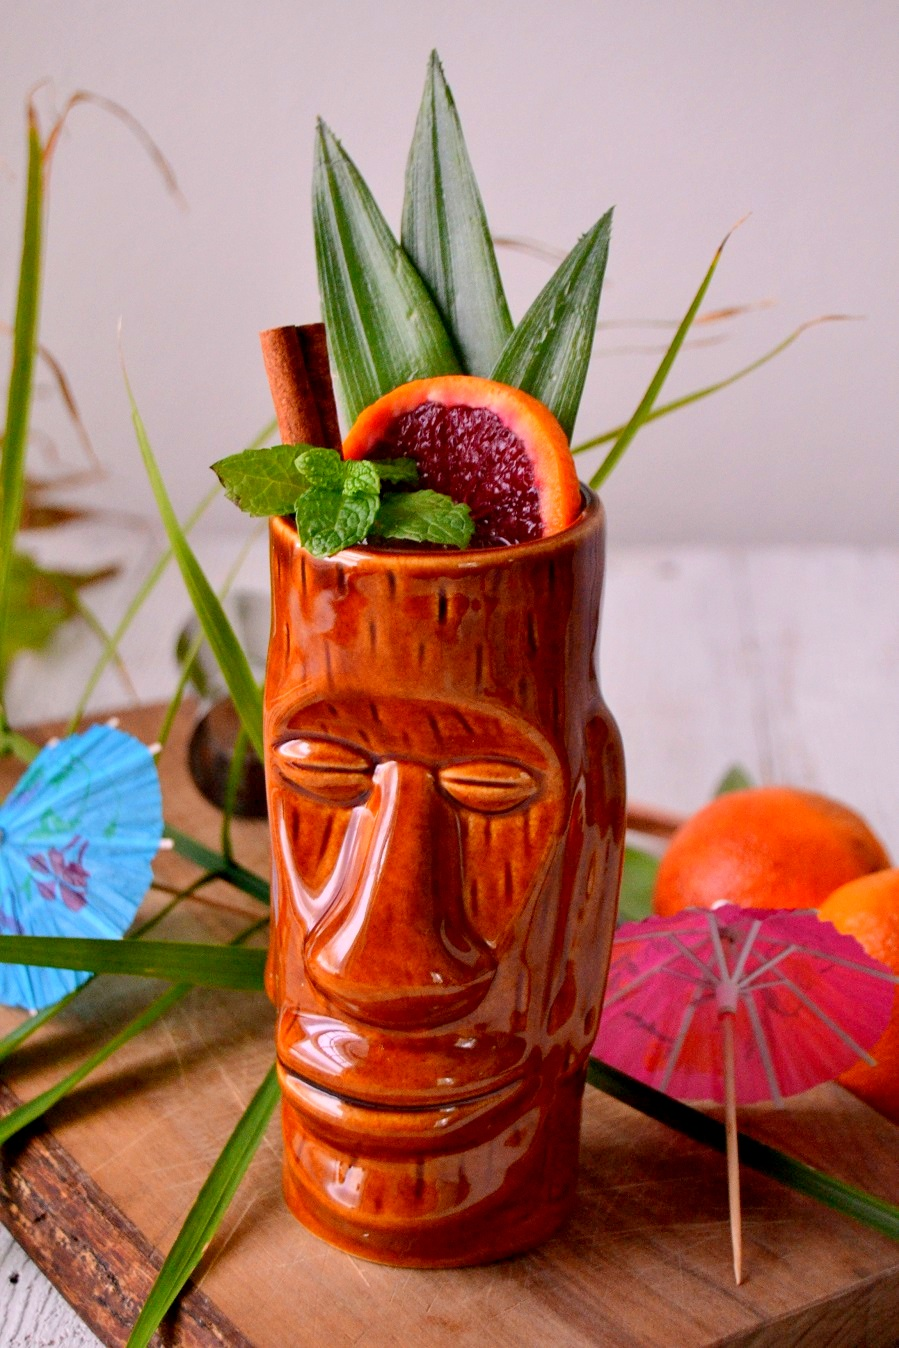 Fair Robin Revival - Blood Orange Cinnamon Mai Tai